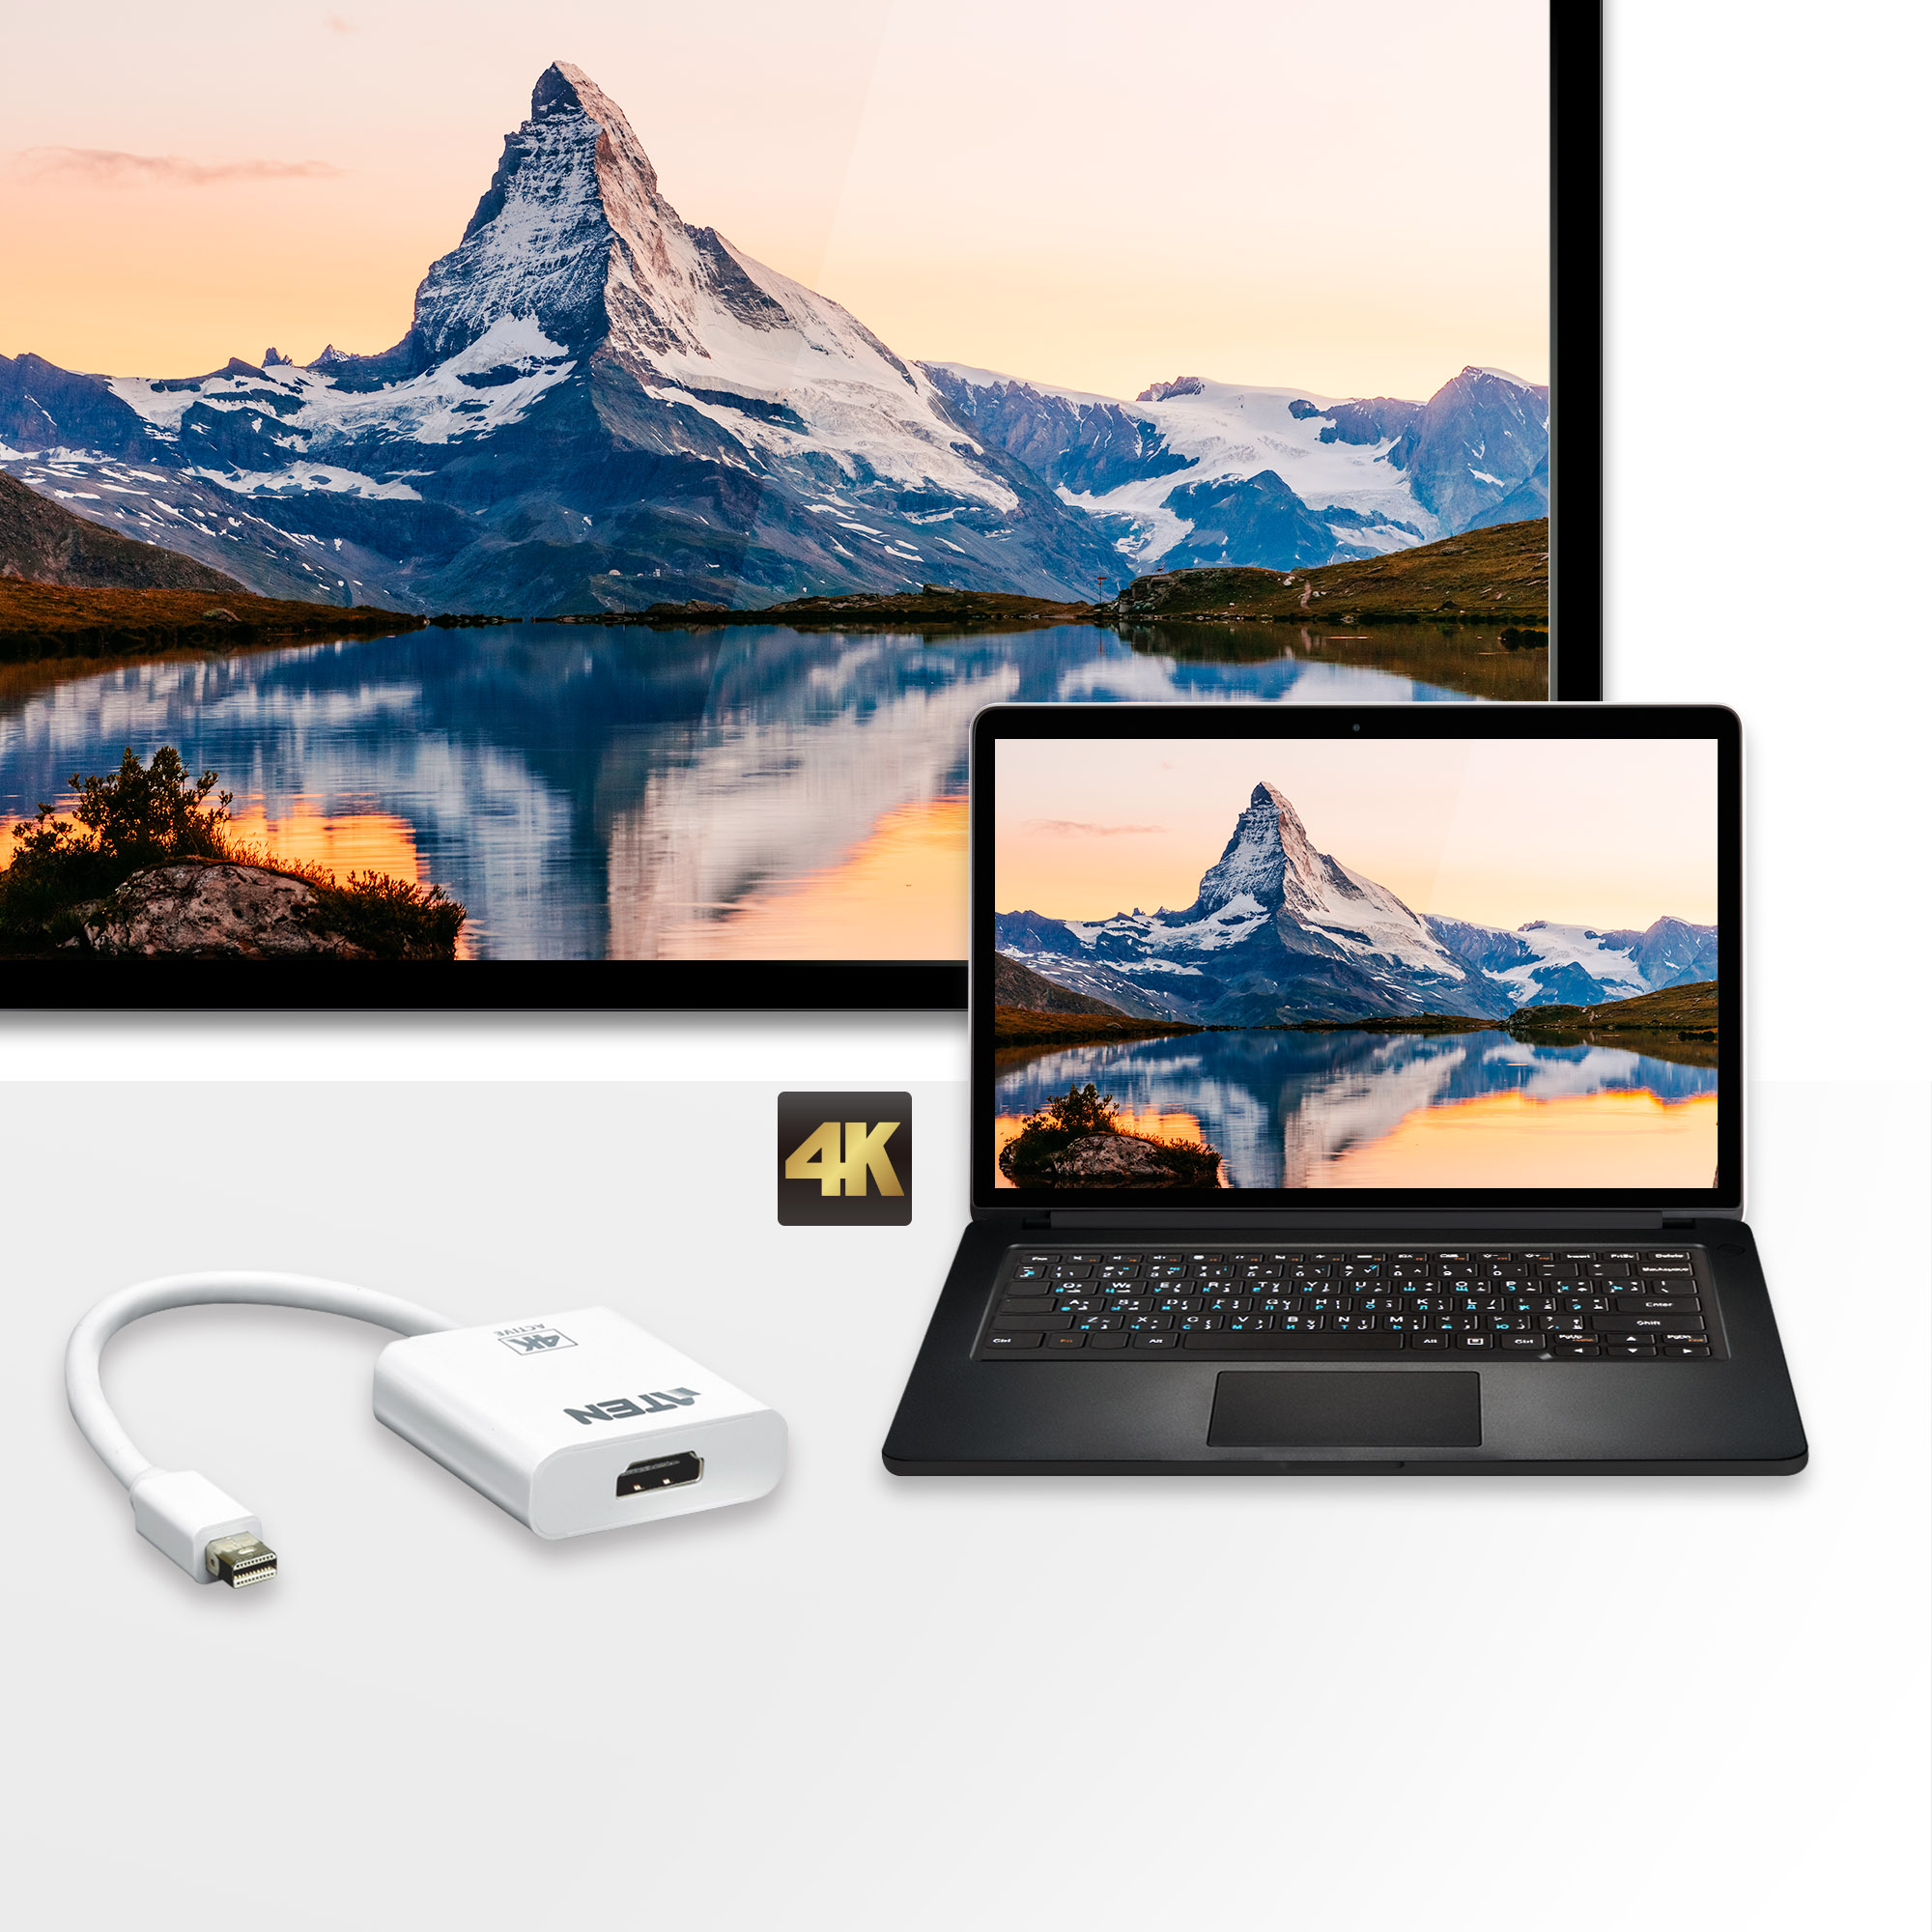 Adaptador activo de Mini DisplayPort a HDMI 4K-3